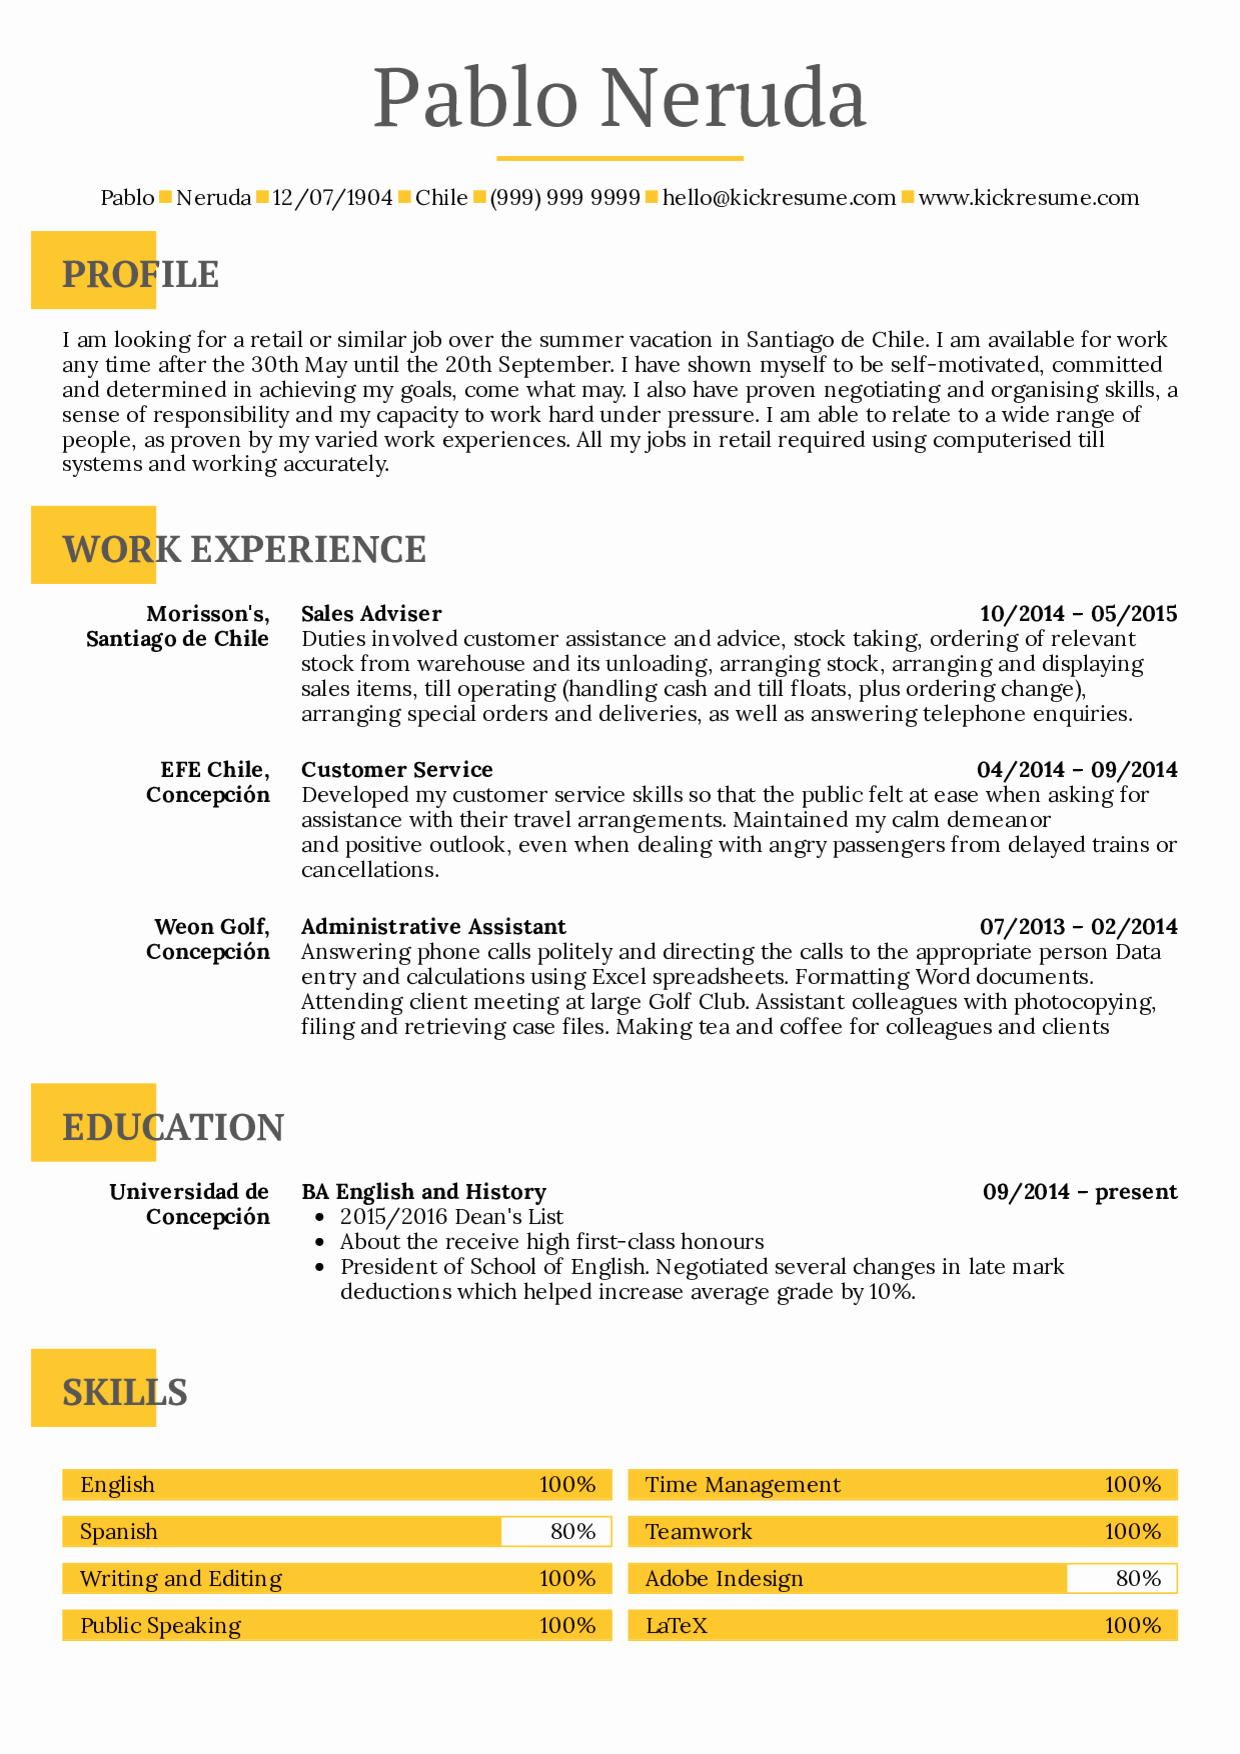 Cv Samples for Students Beautiful Resume Examples by Real People Student Resume Summer Job